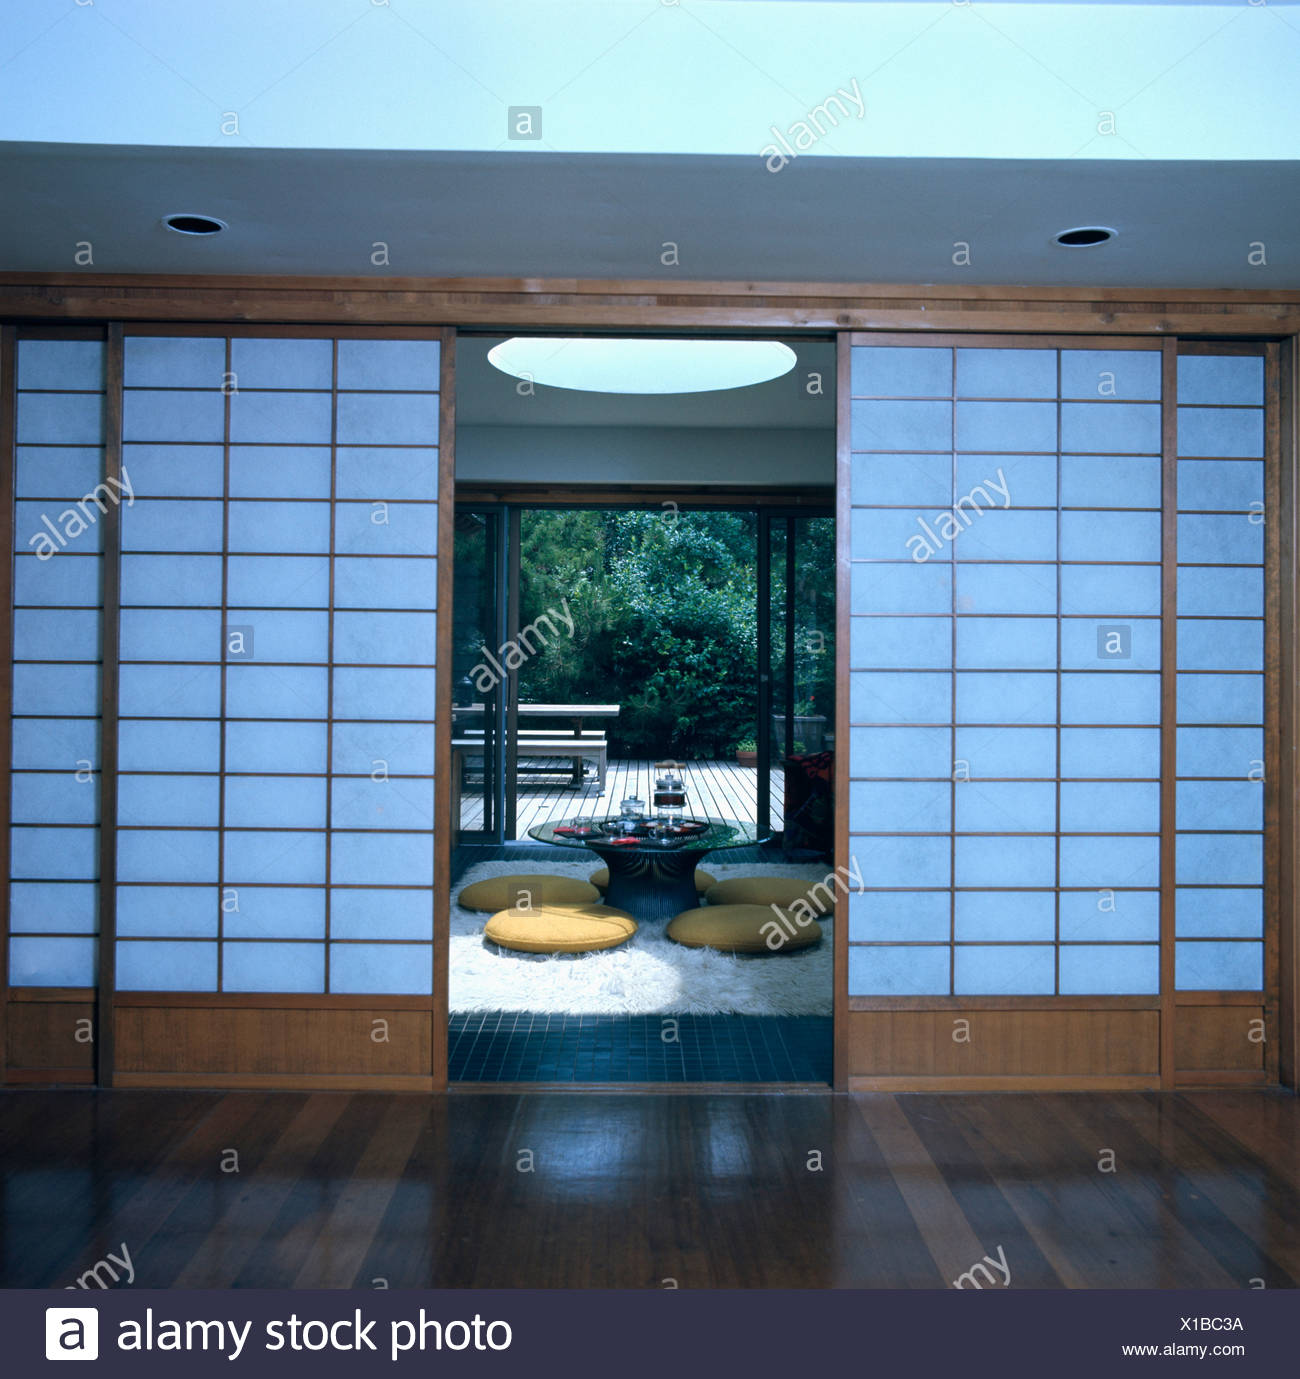 Japanese Screen Doors With View Of Oriental Courtyard   Stock Image